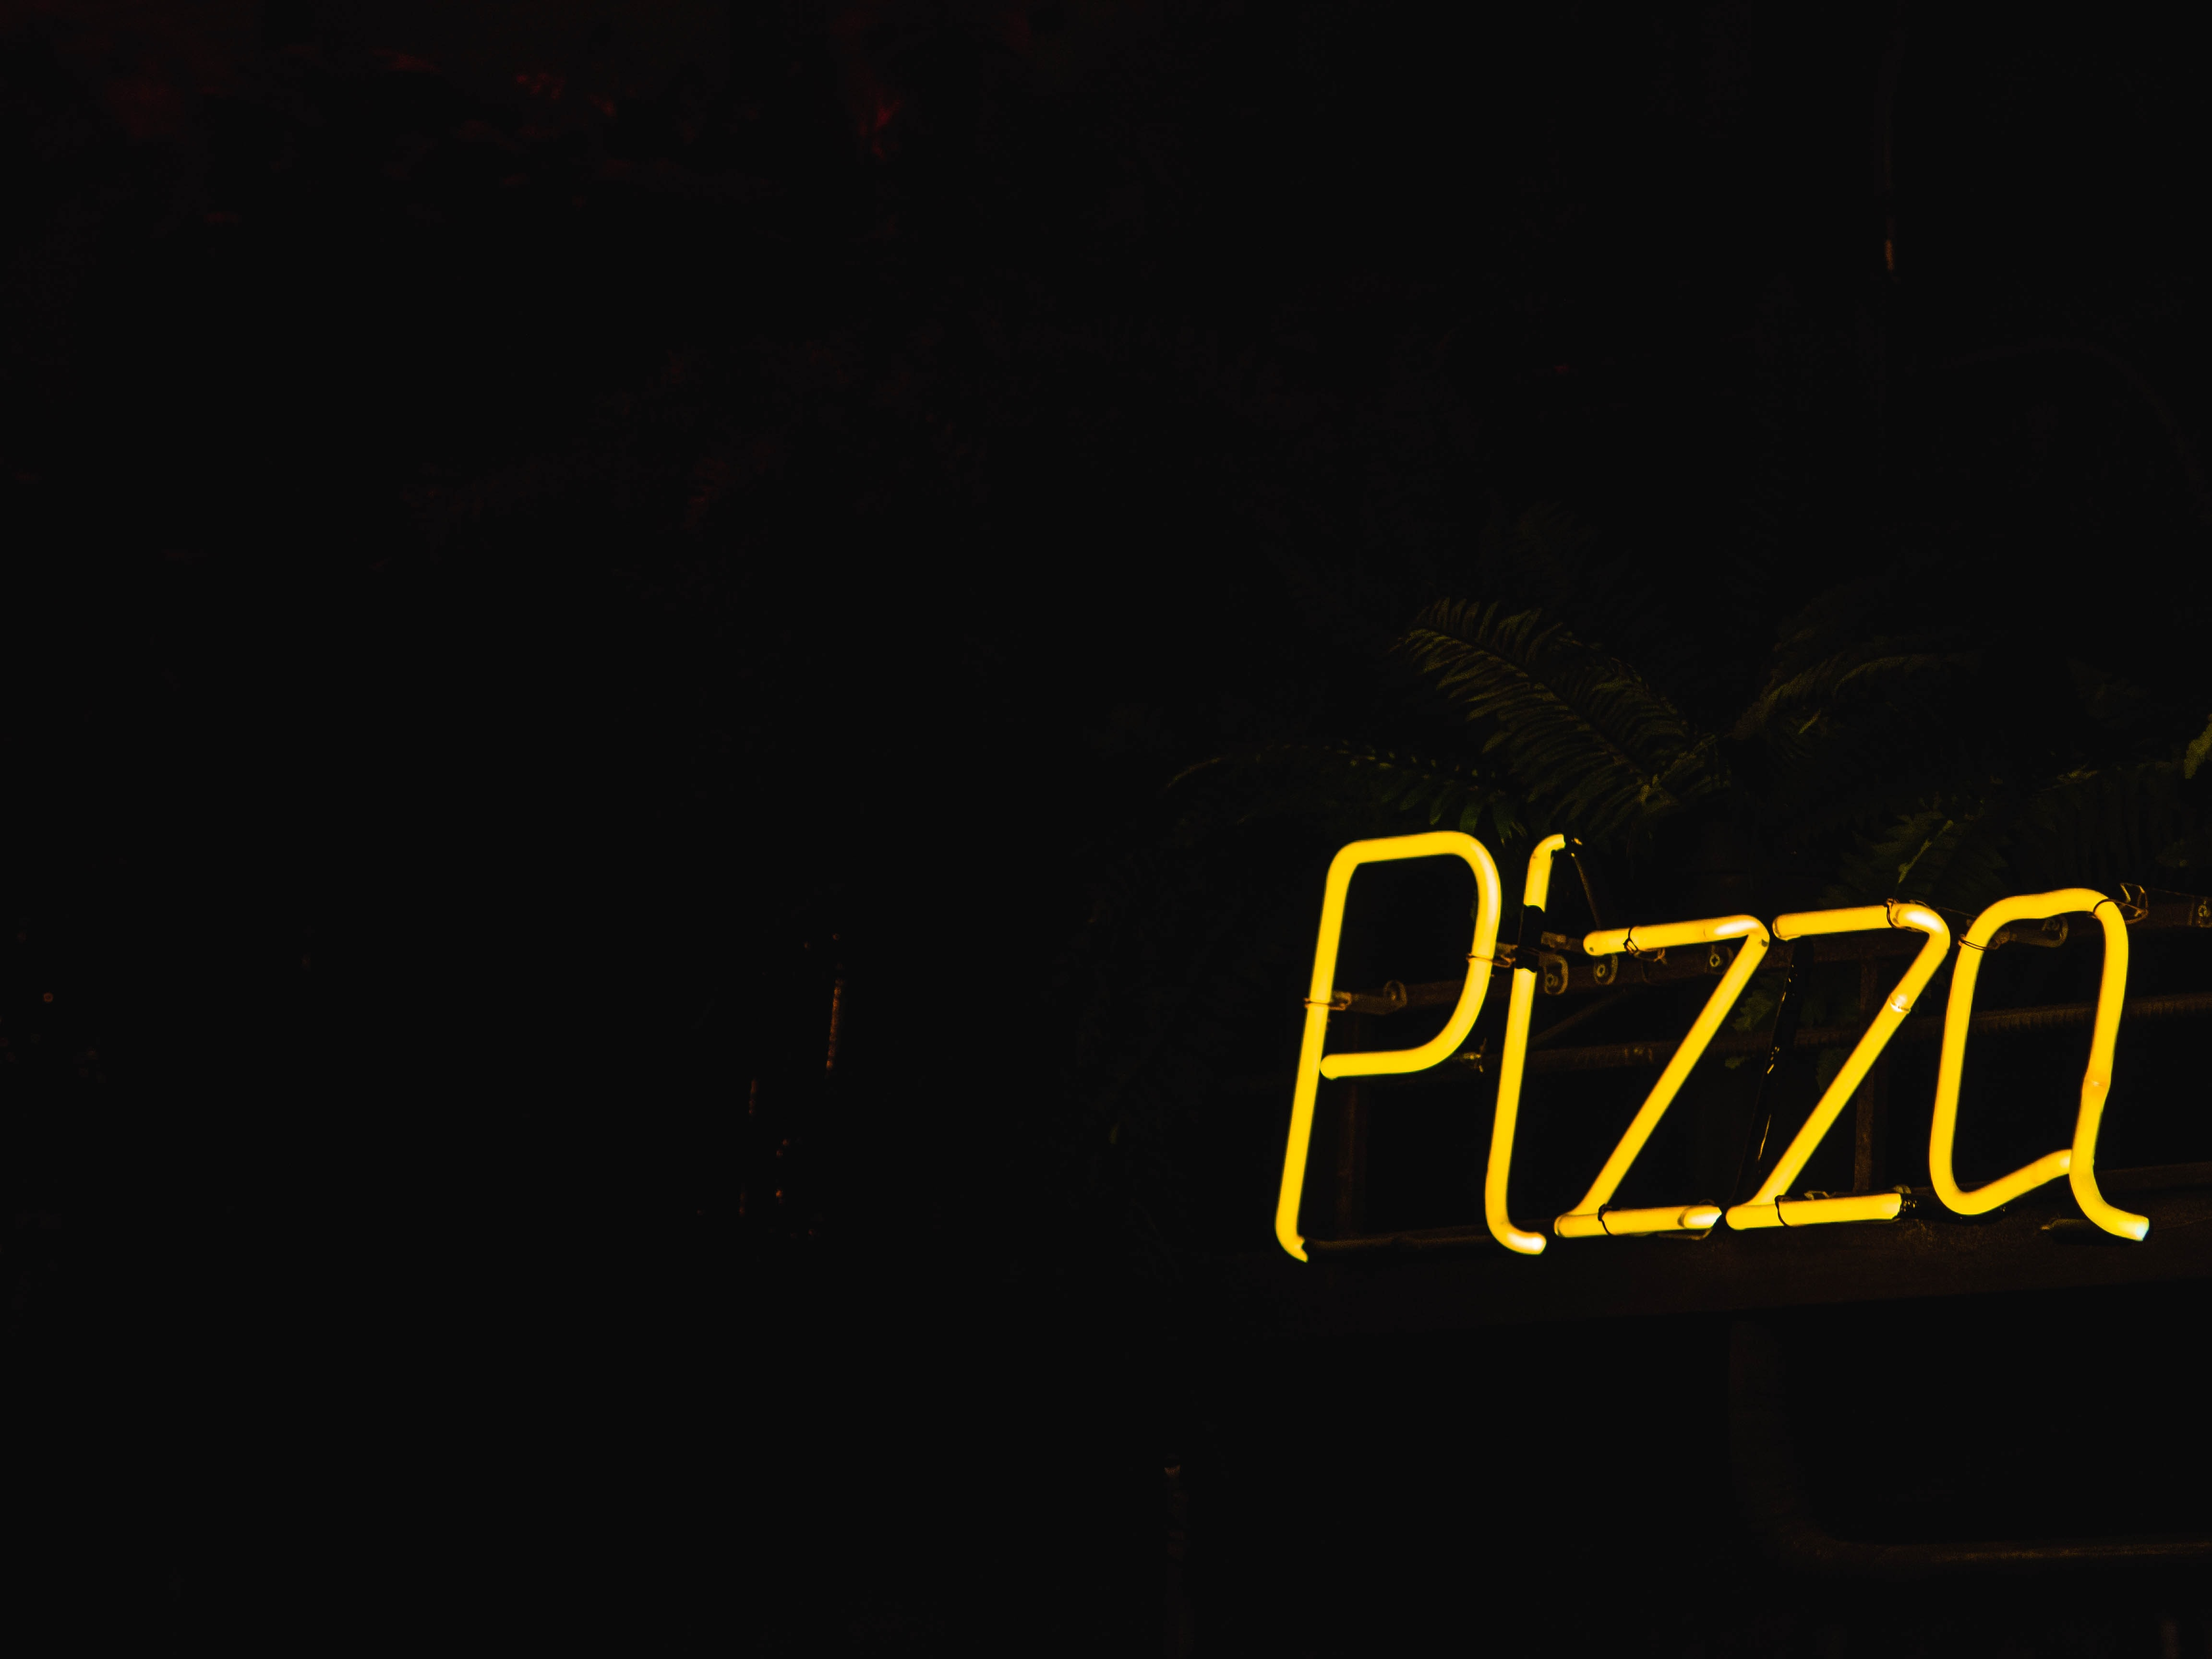 switched on yellow Pizza neon signage